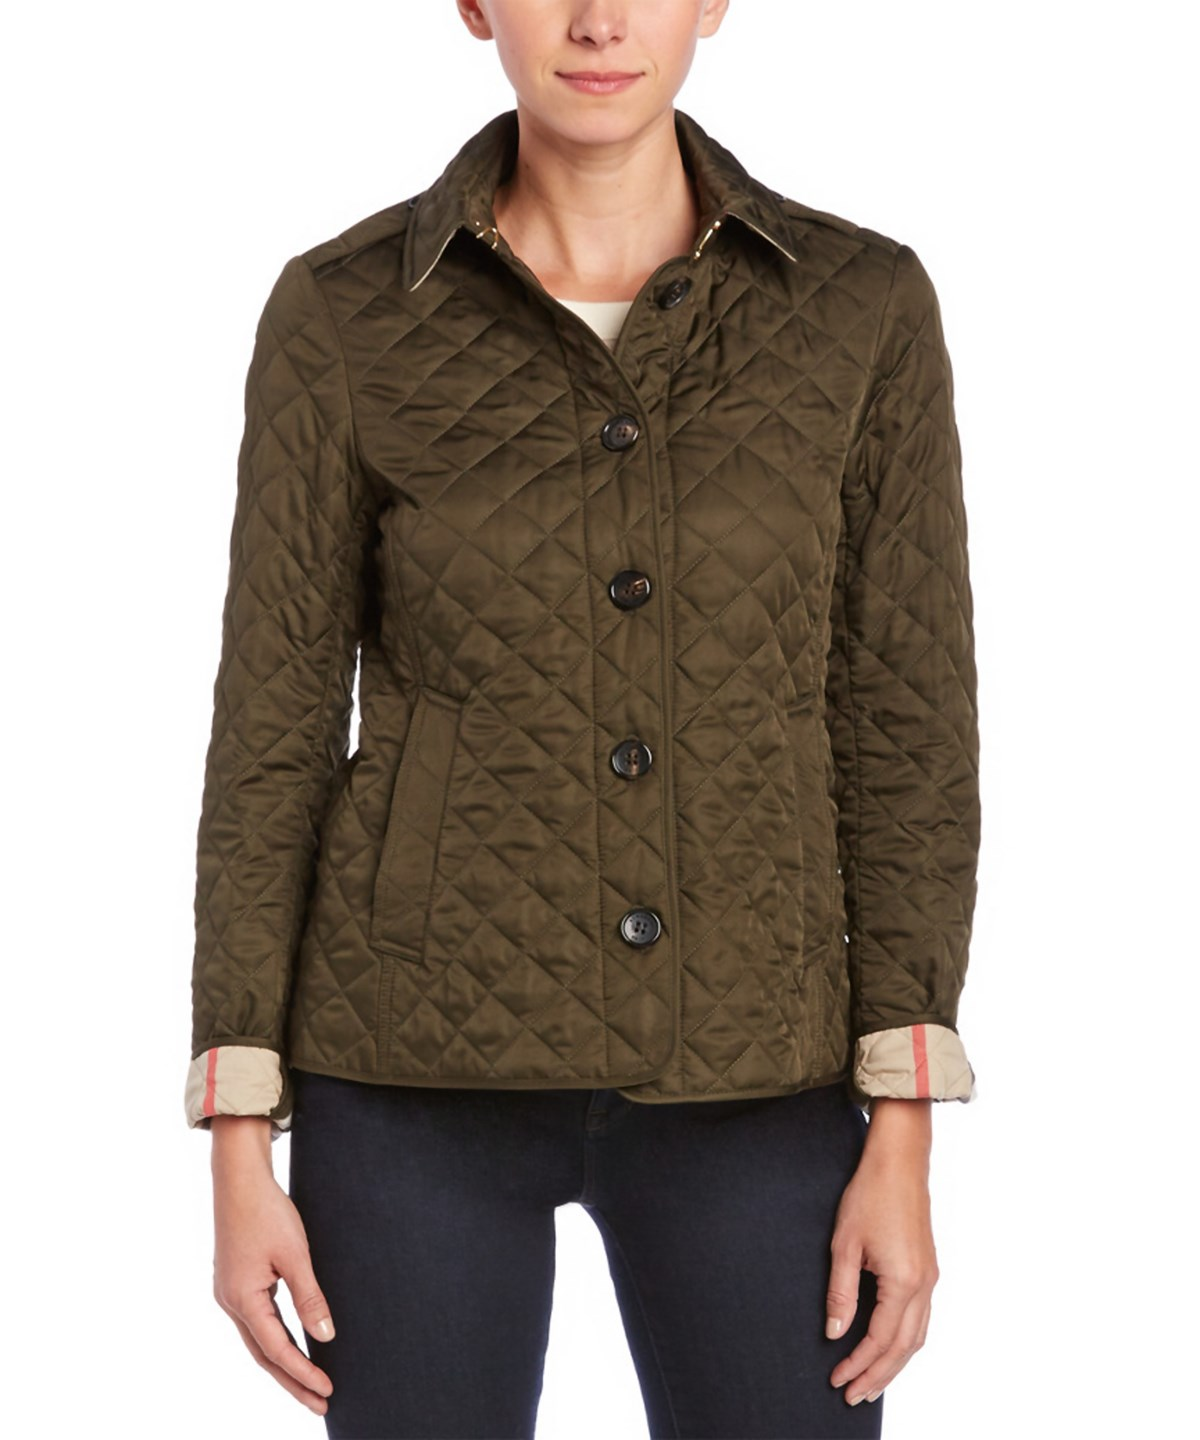 Burberry Cottons BURBERRY ASHURST DIAMOND QUILTED JACKET